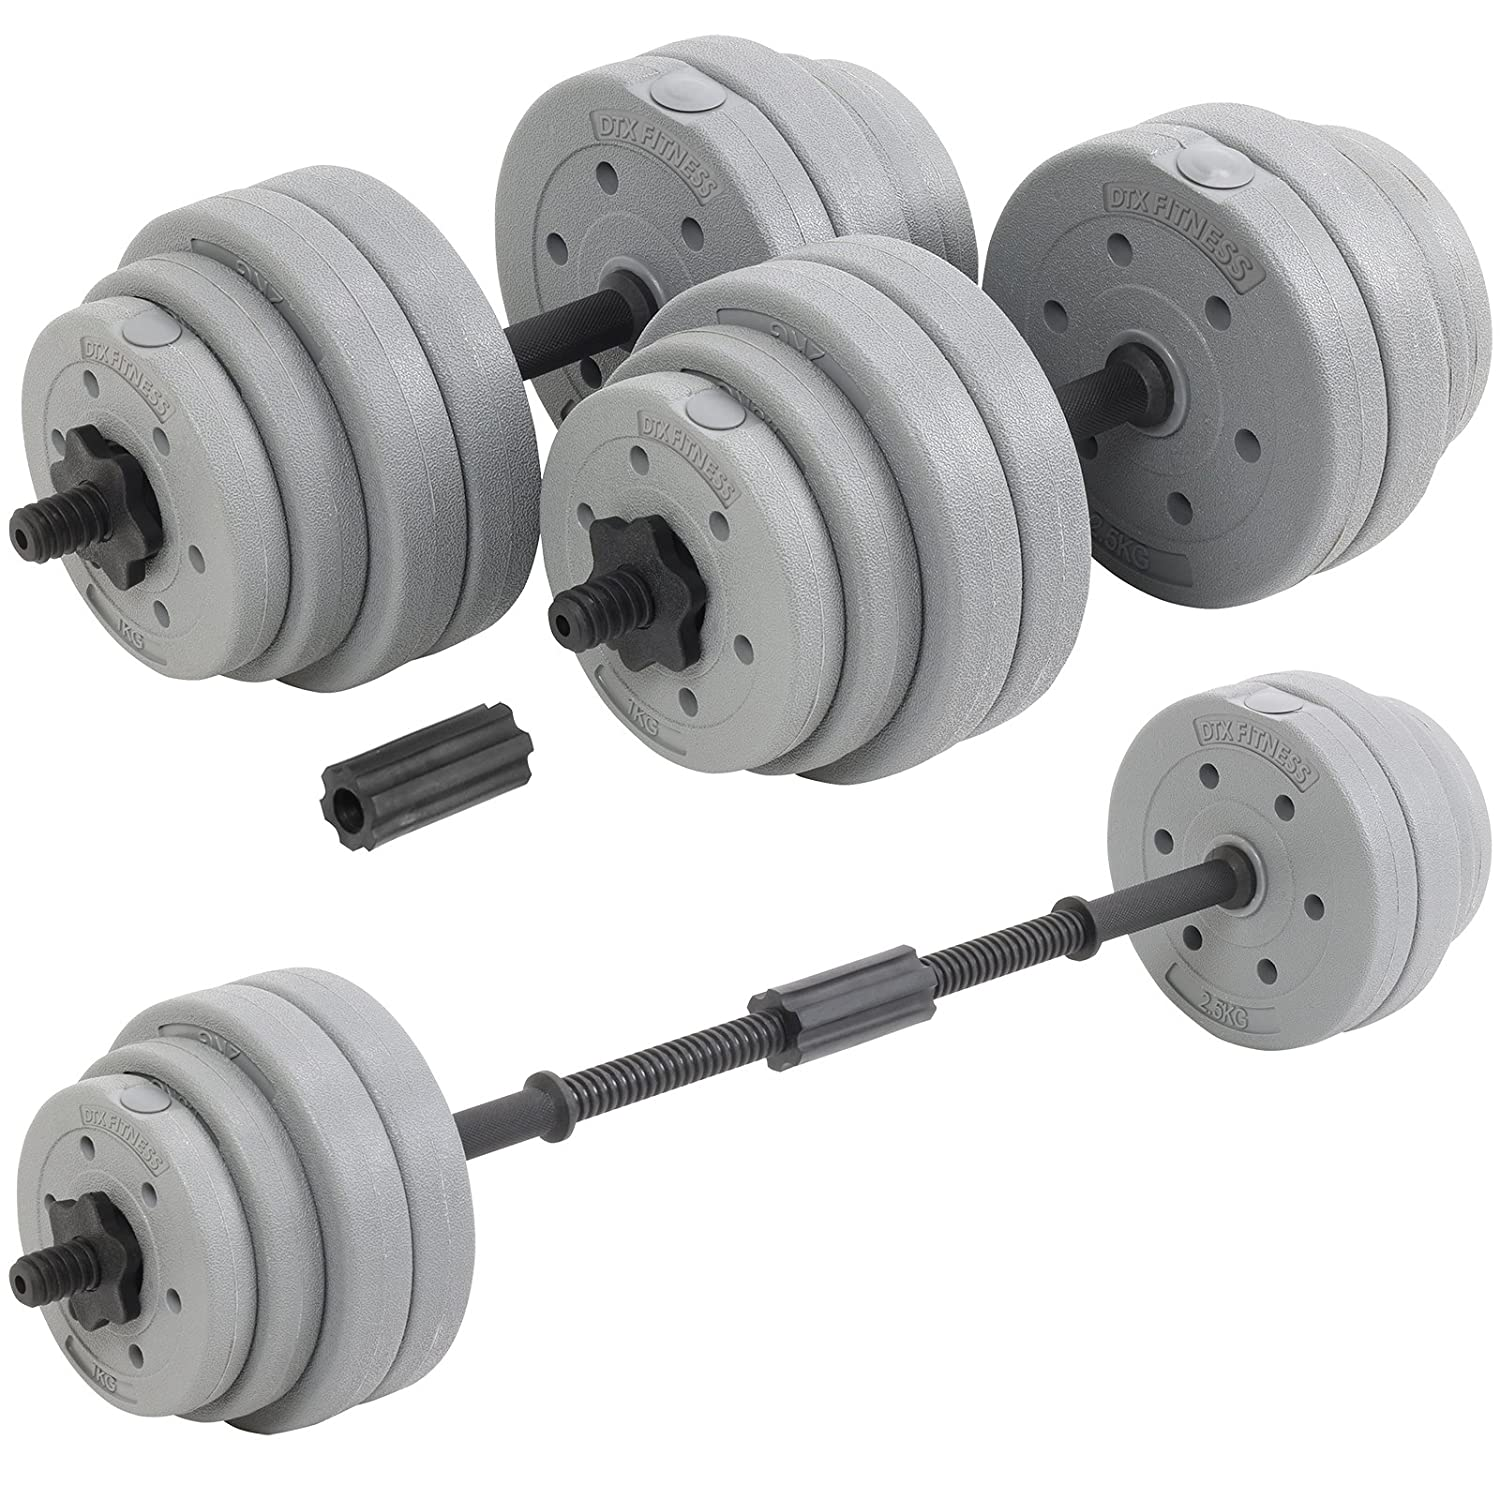 Dtx Fitness 30 Kg Adjustable Weight Lifting Dumbbell Barbell Bar & Weights Set   Silver by Amazon